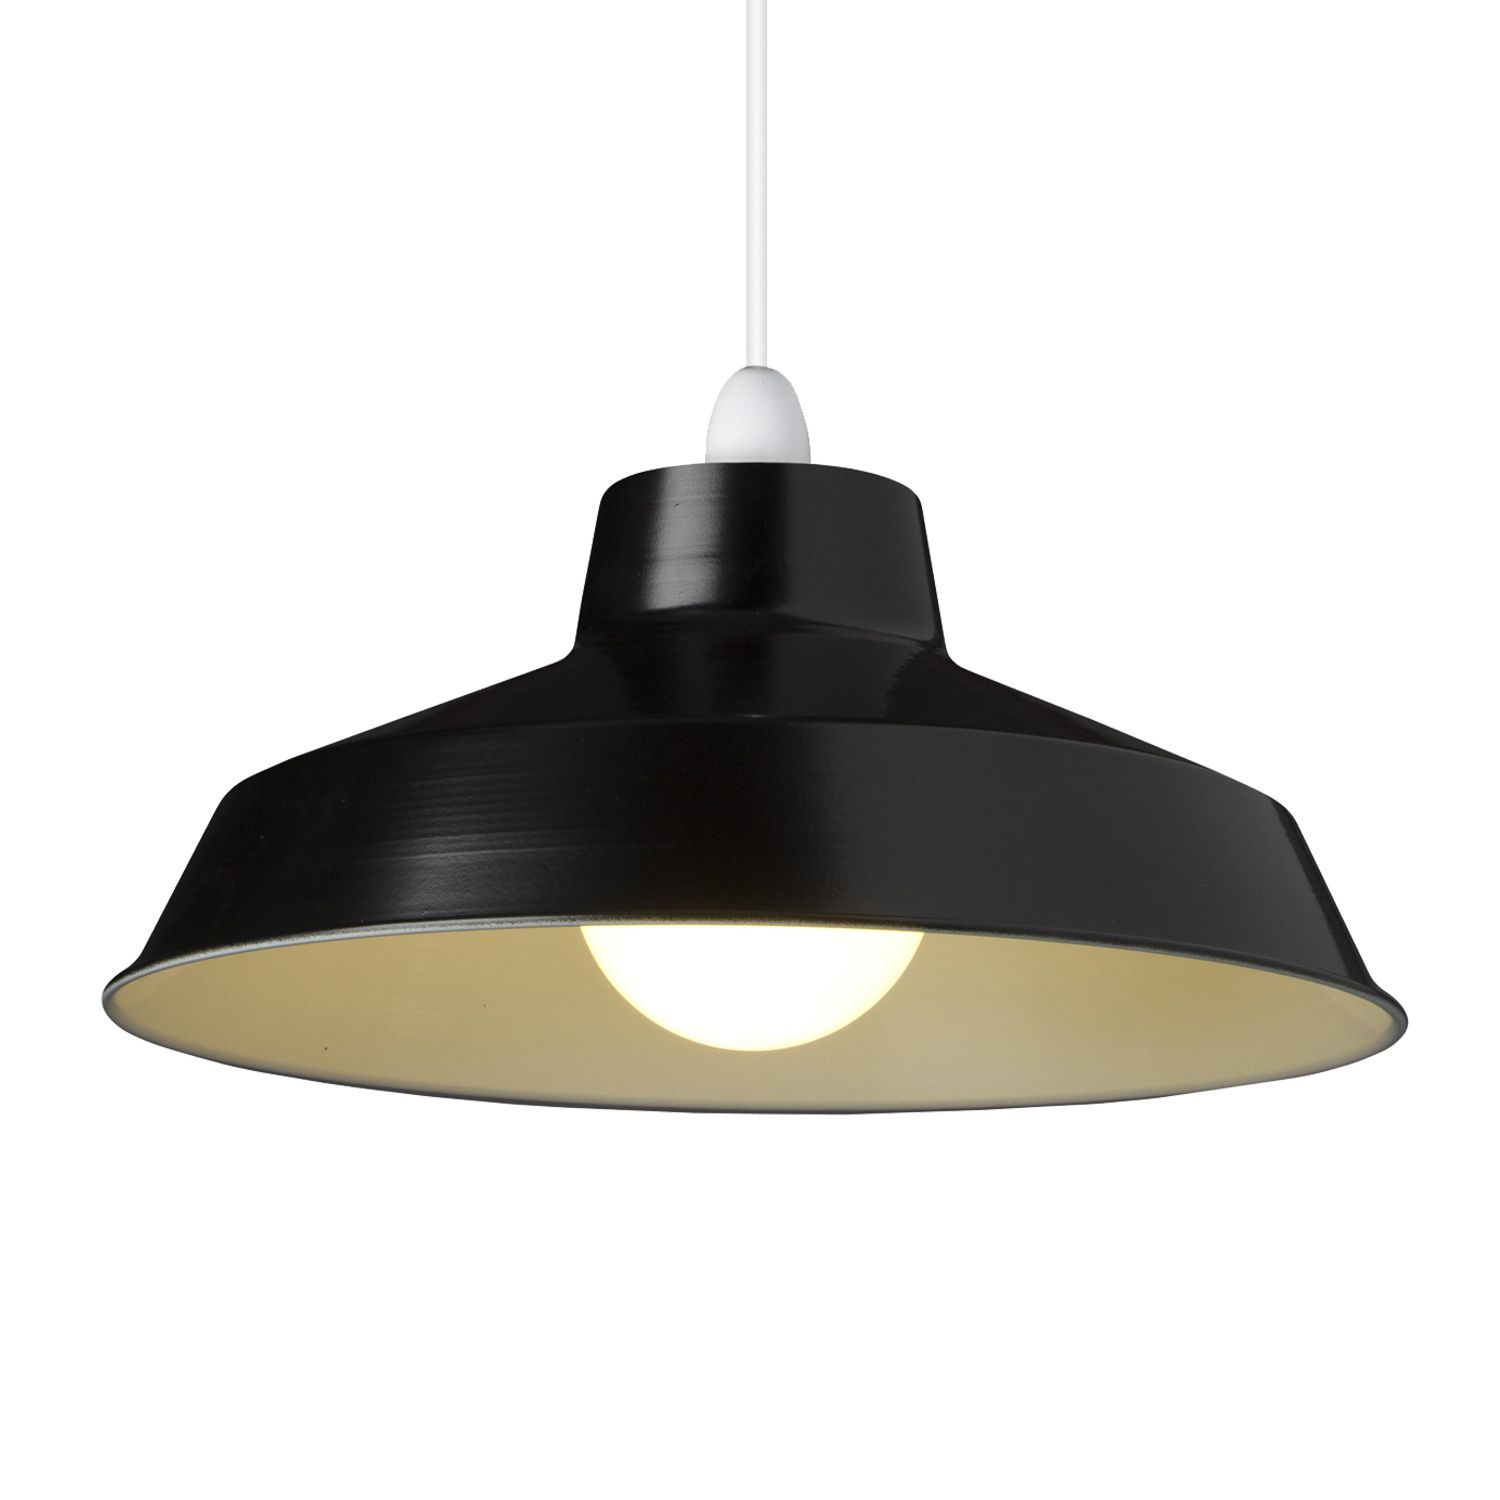 Small Dual Fitting Pluto Metal Lighting Pendant Shades Black Metal Pendant Light